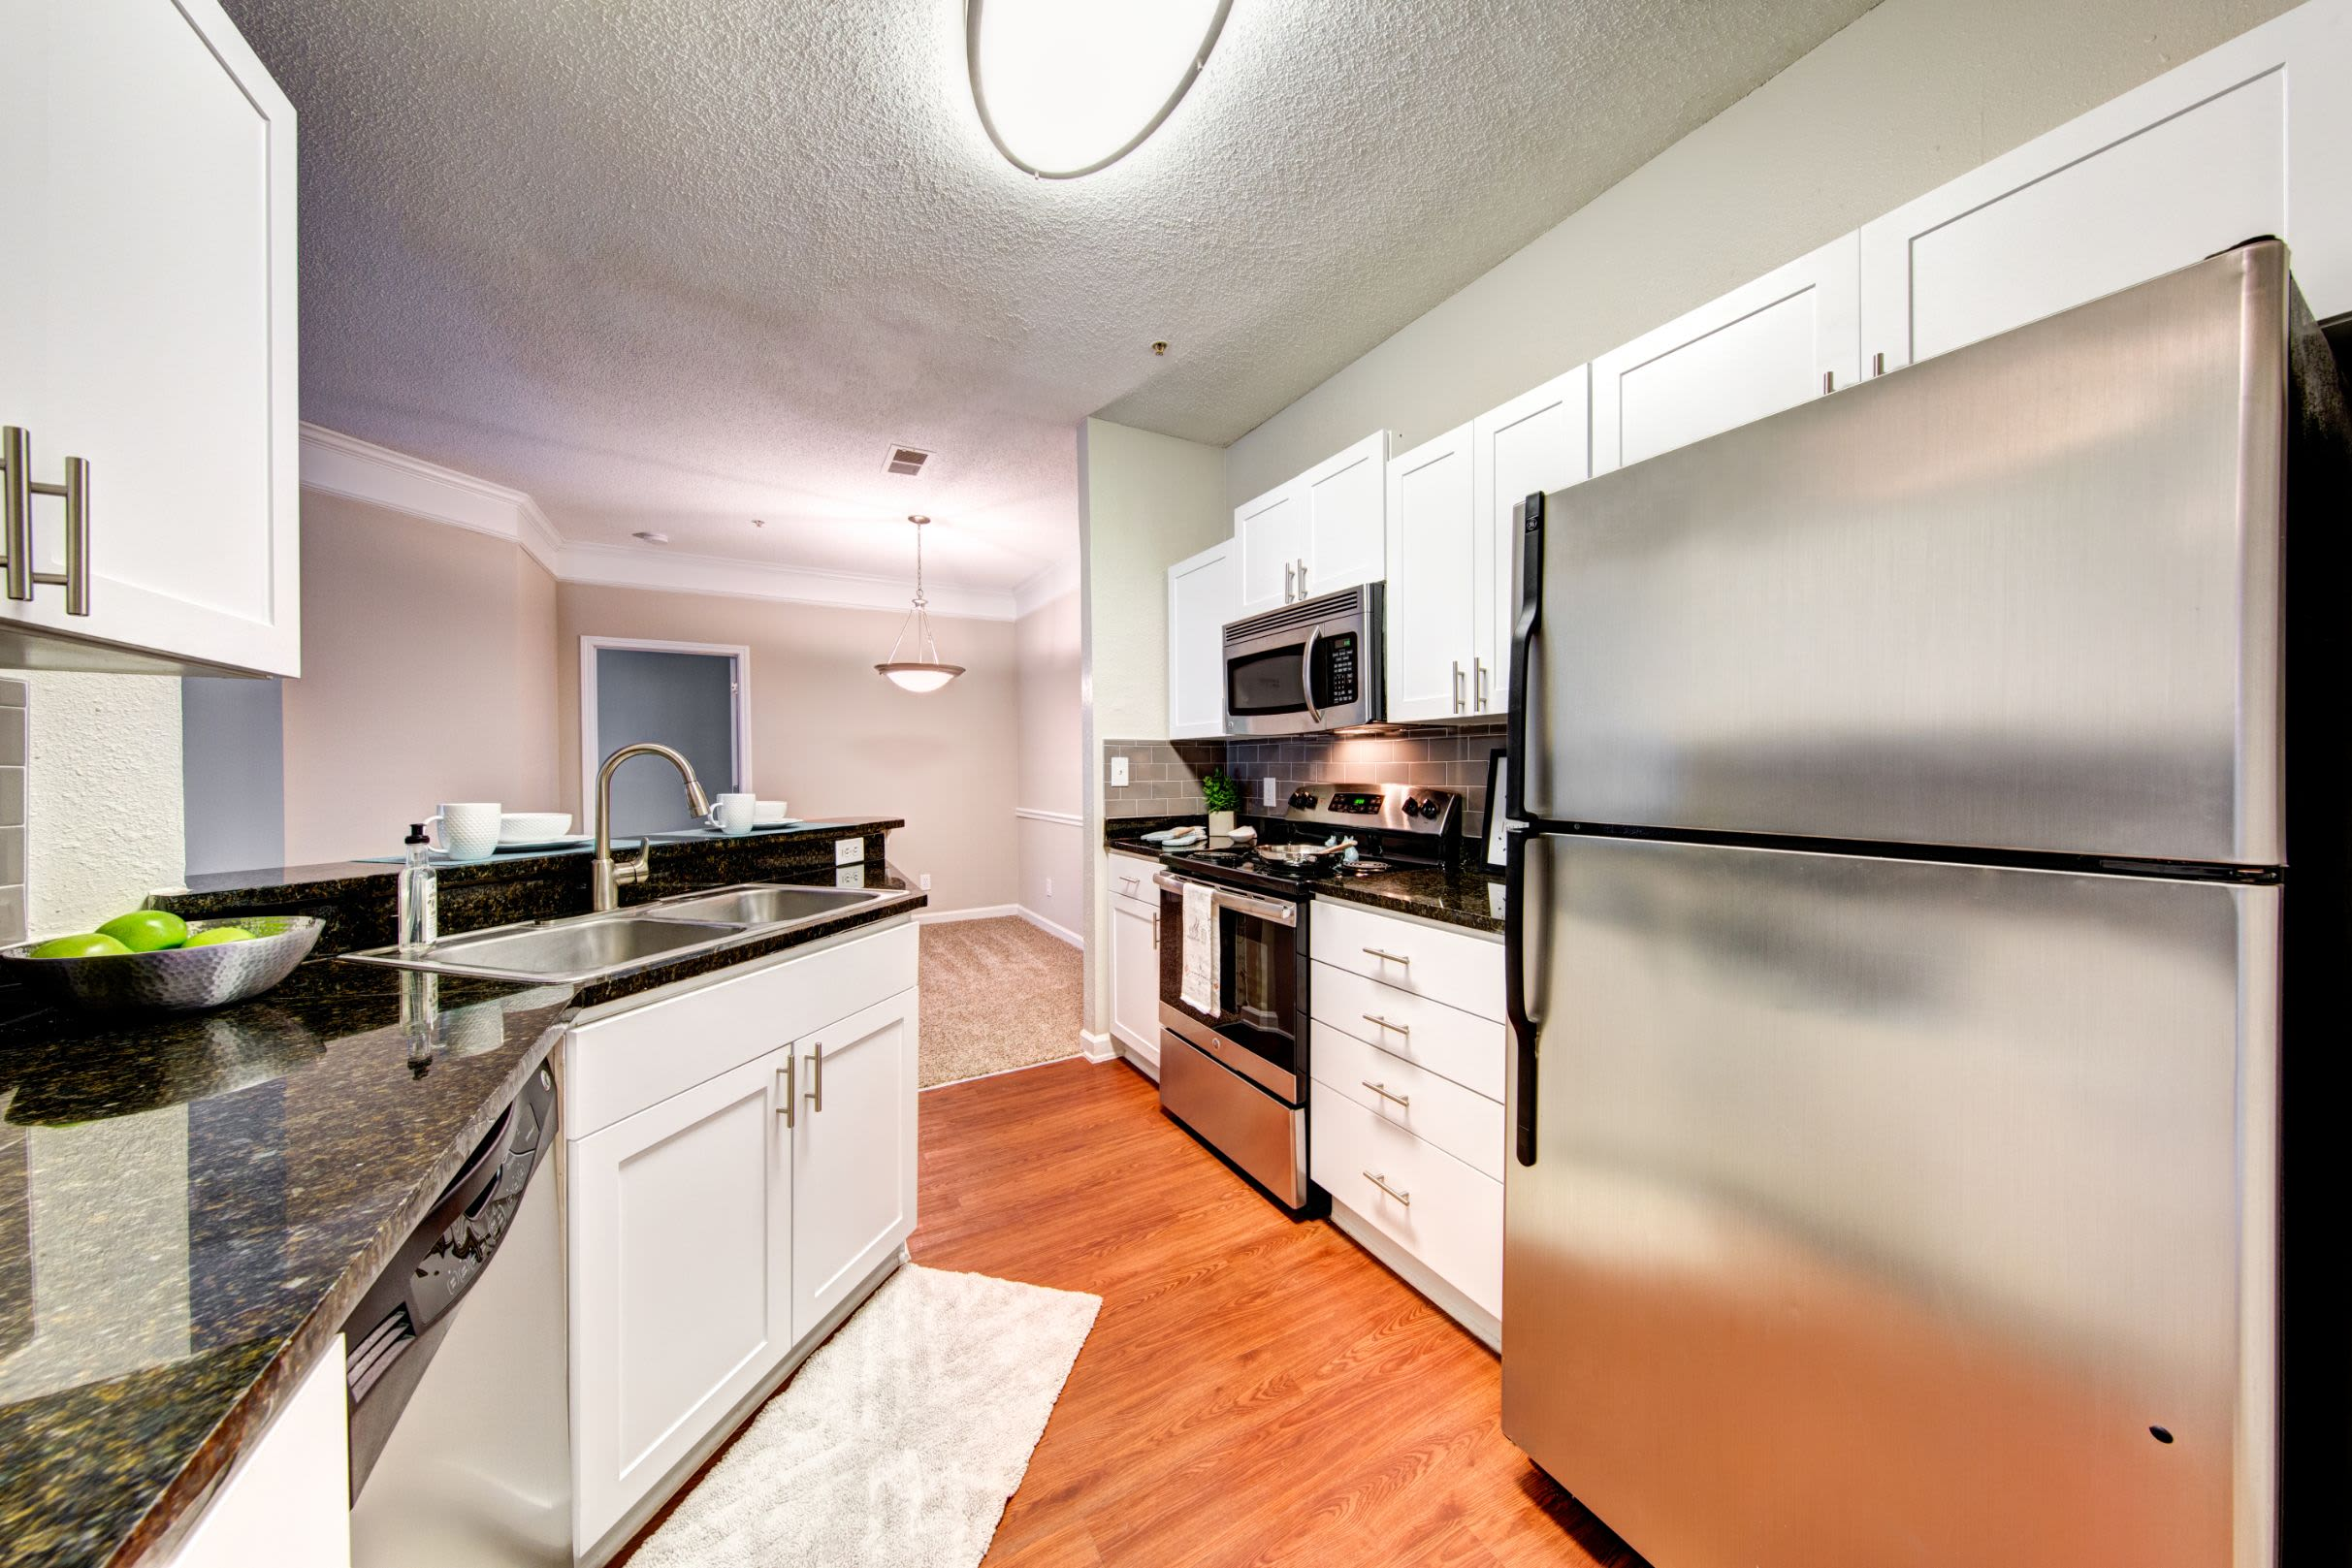 Bright kitchen with a large stainless steel fridge at Marquis on Edwards Mill in Raleigh, North Carolina